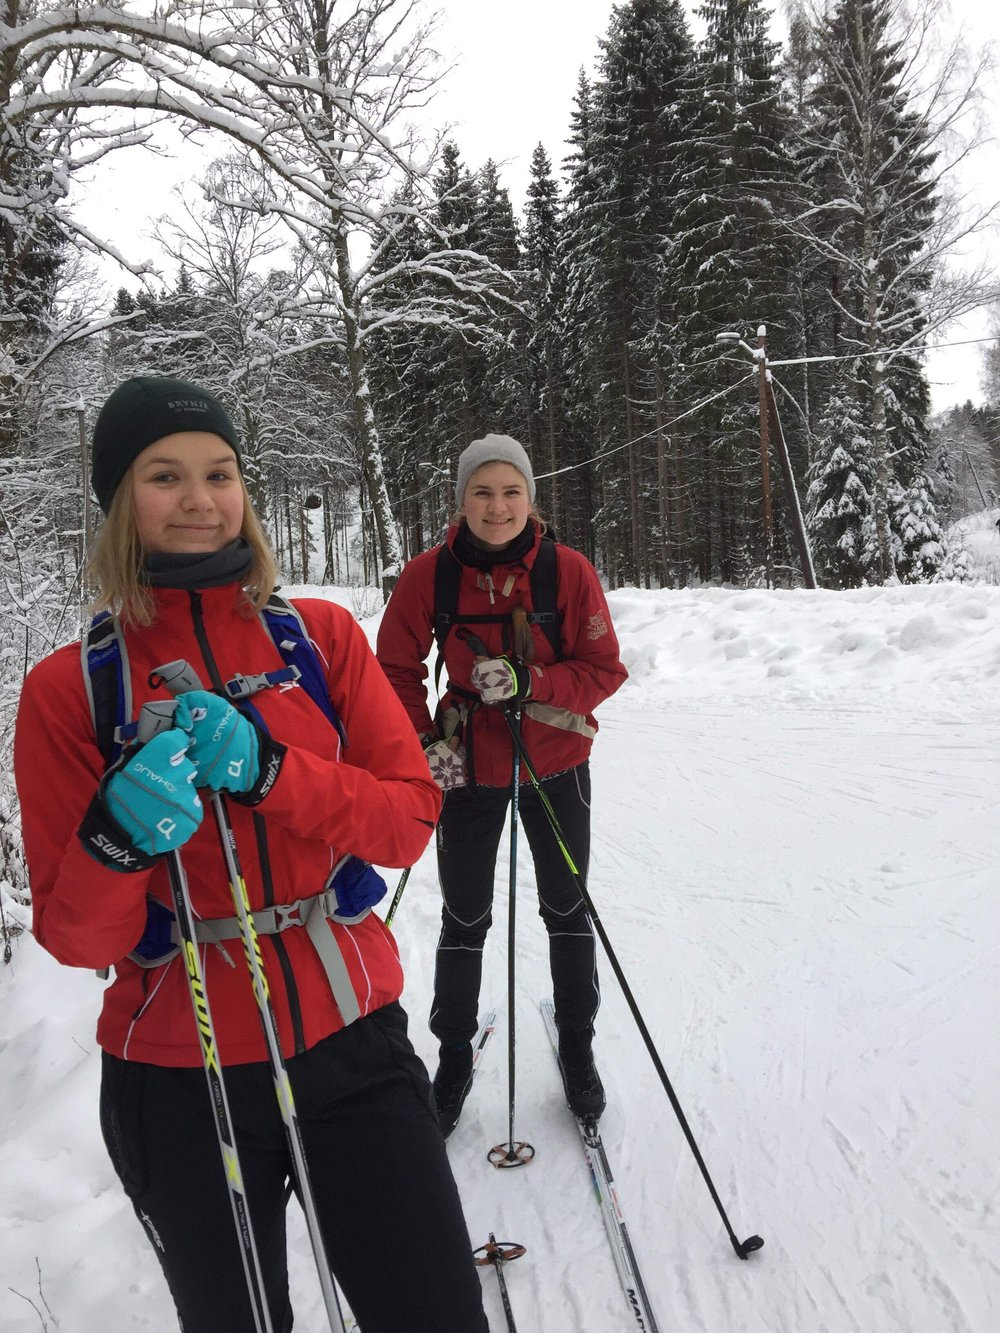 Ingrid and her sister Gabrielle on a cross-country skiing trip. Photo: Valérie Legrand Gjerdset.